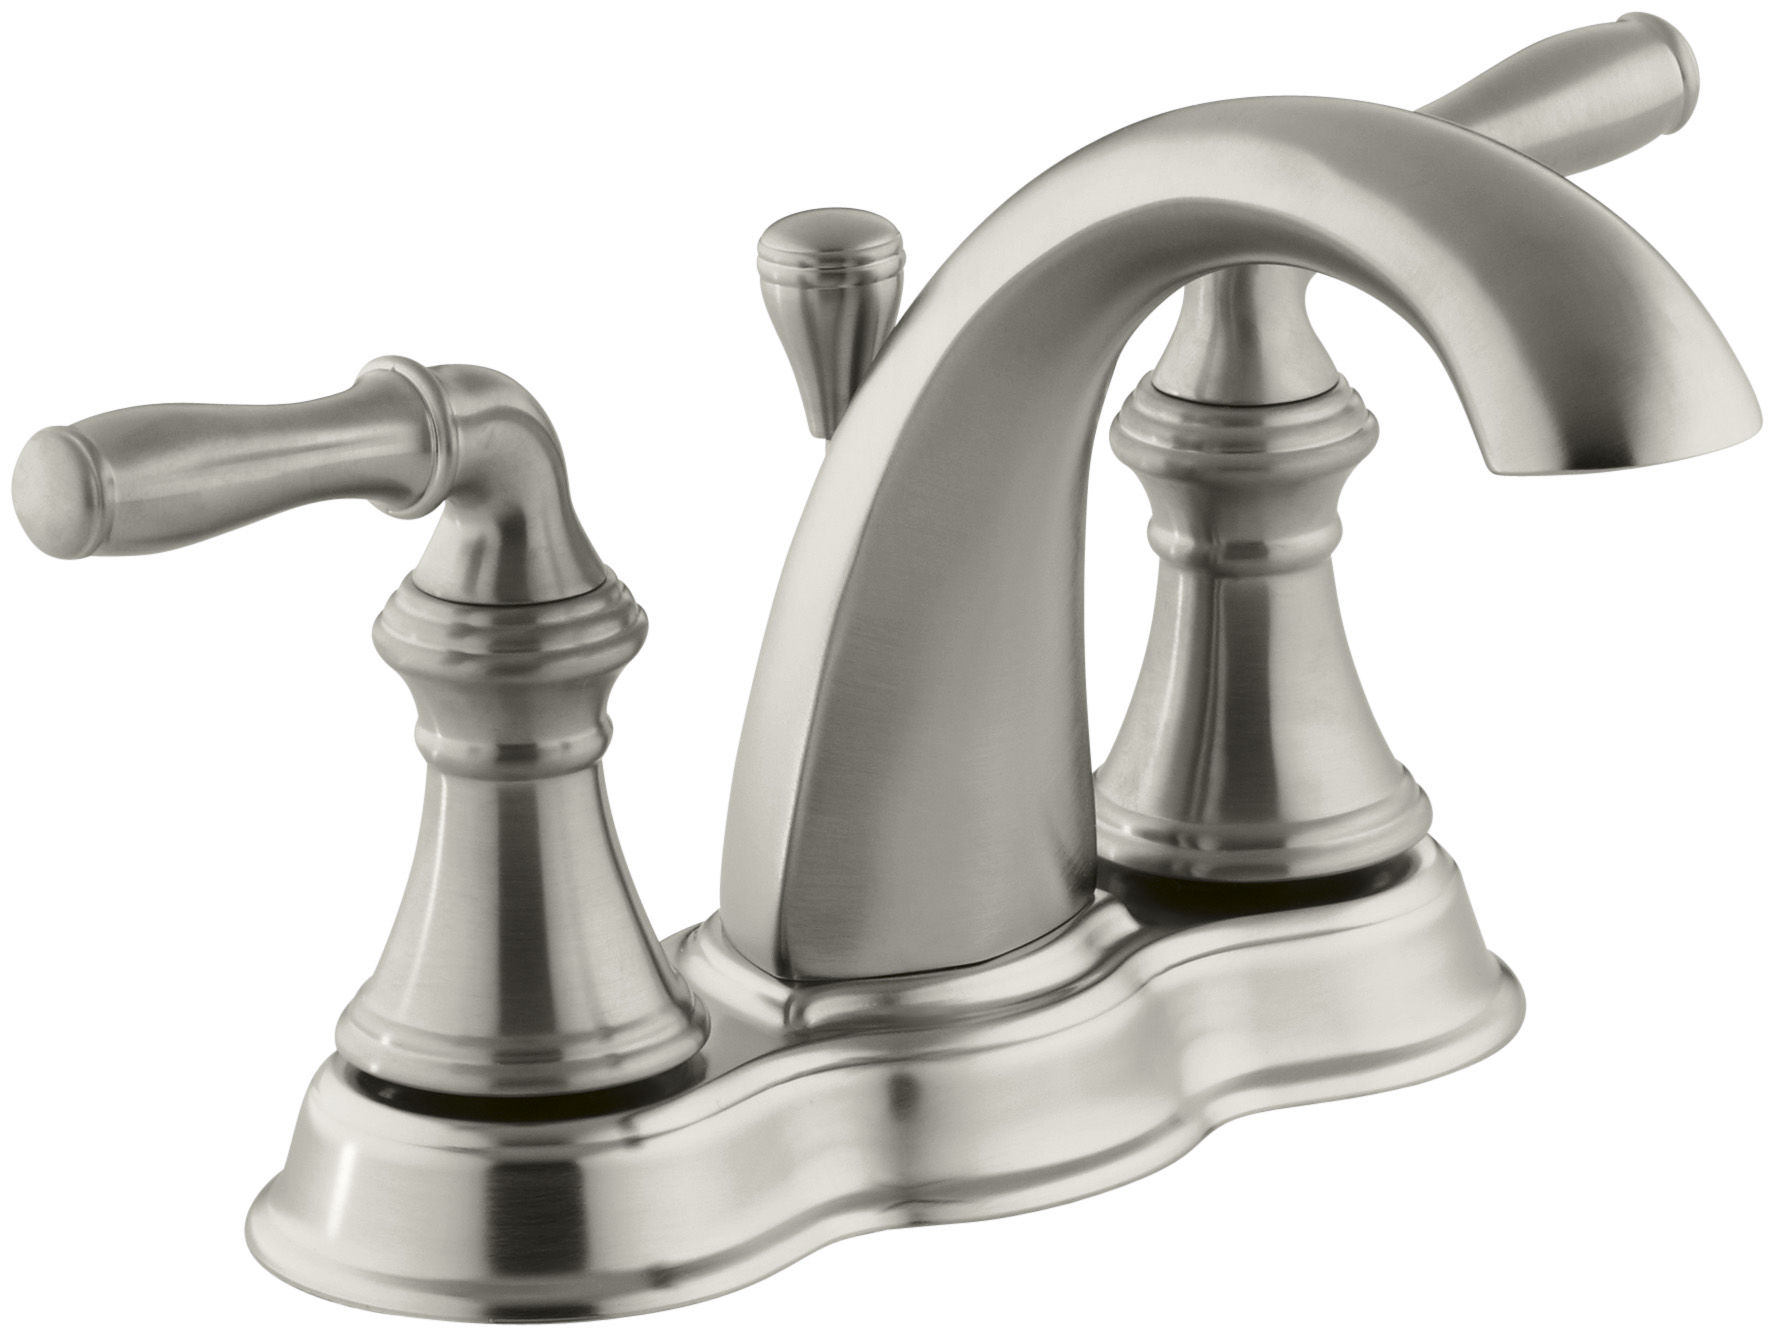 Kohler K-393-N4-CP Polished Chrome Devonshire Centerset Bathroom ...